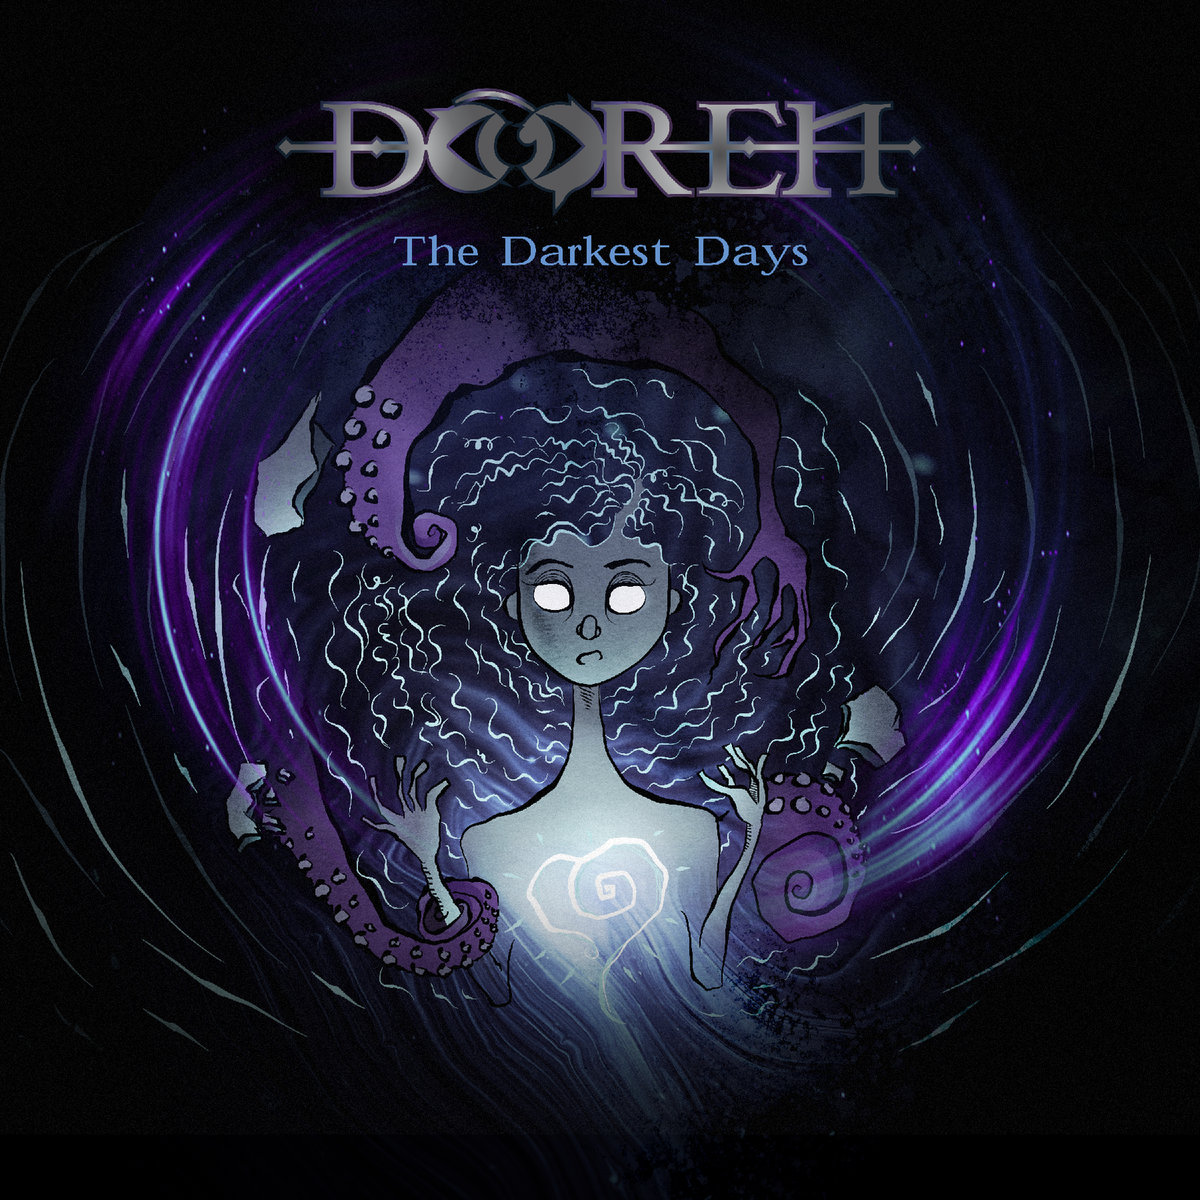 Dooren - The Darkest Days (2019), Artwork